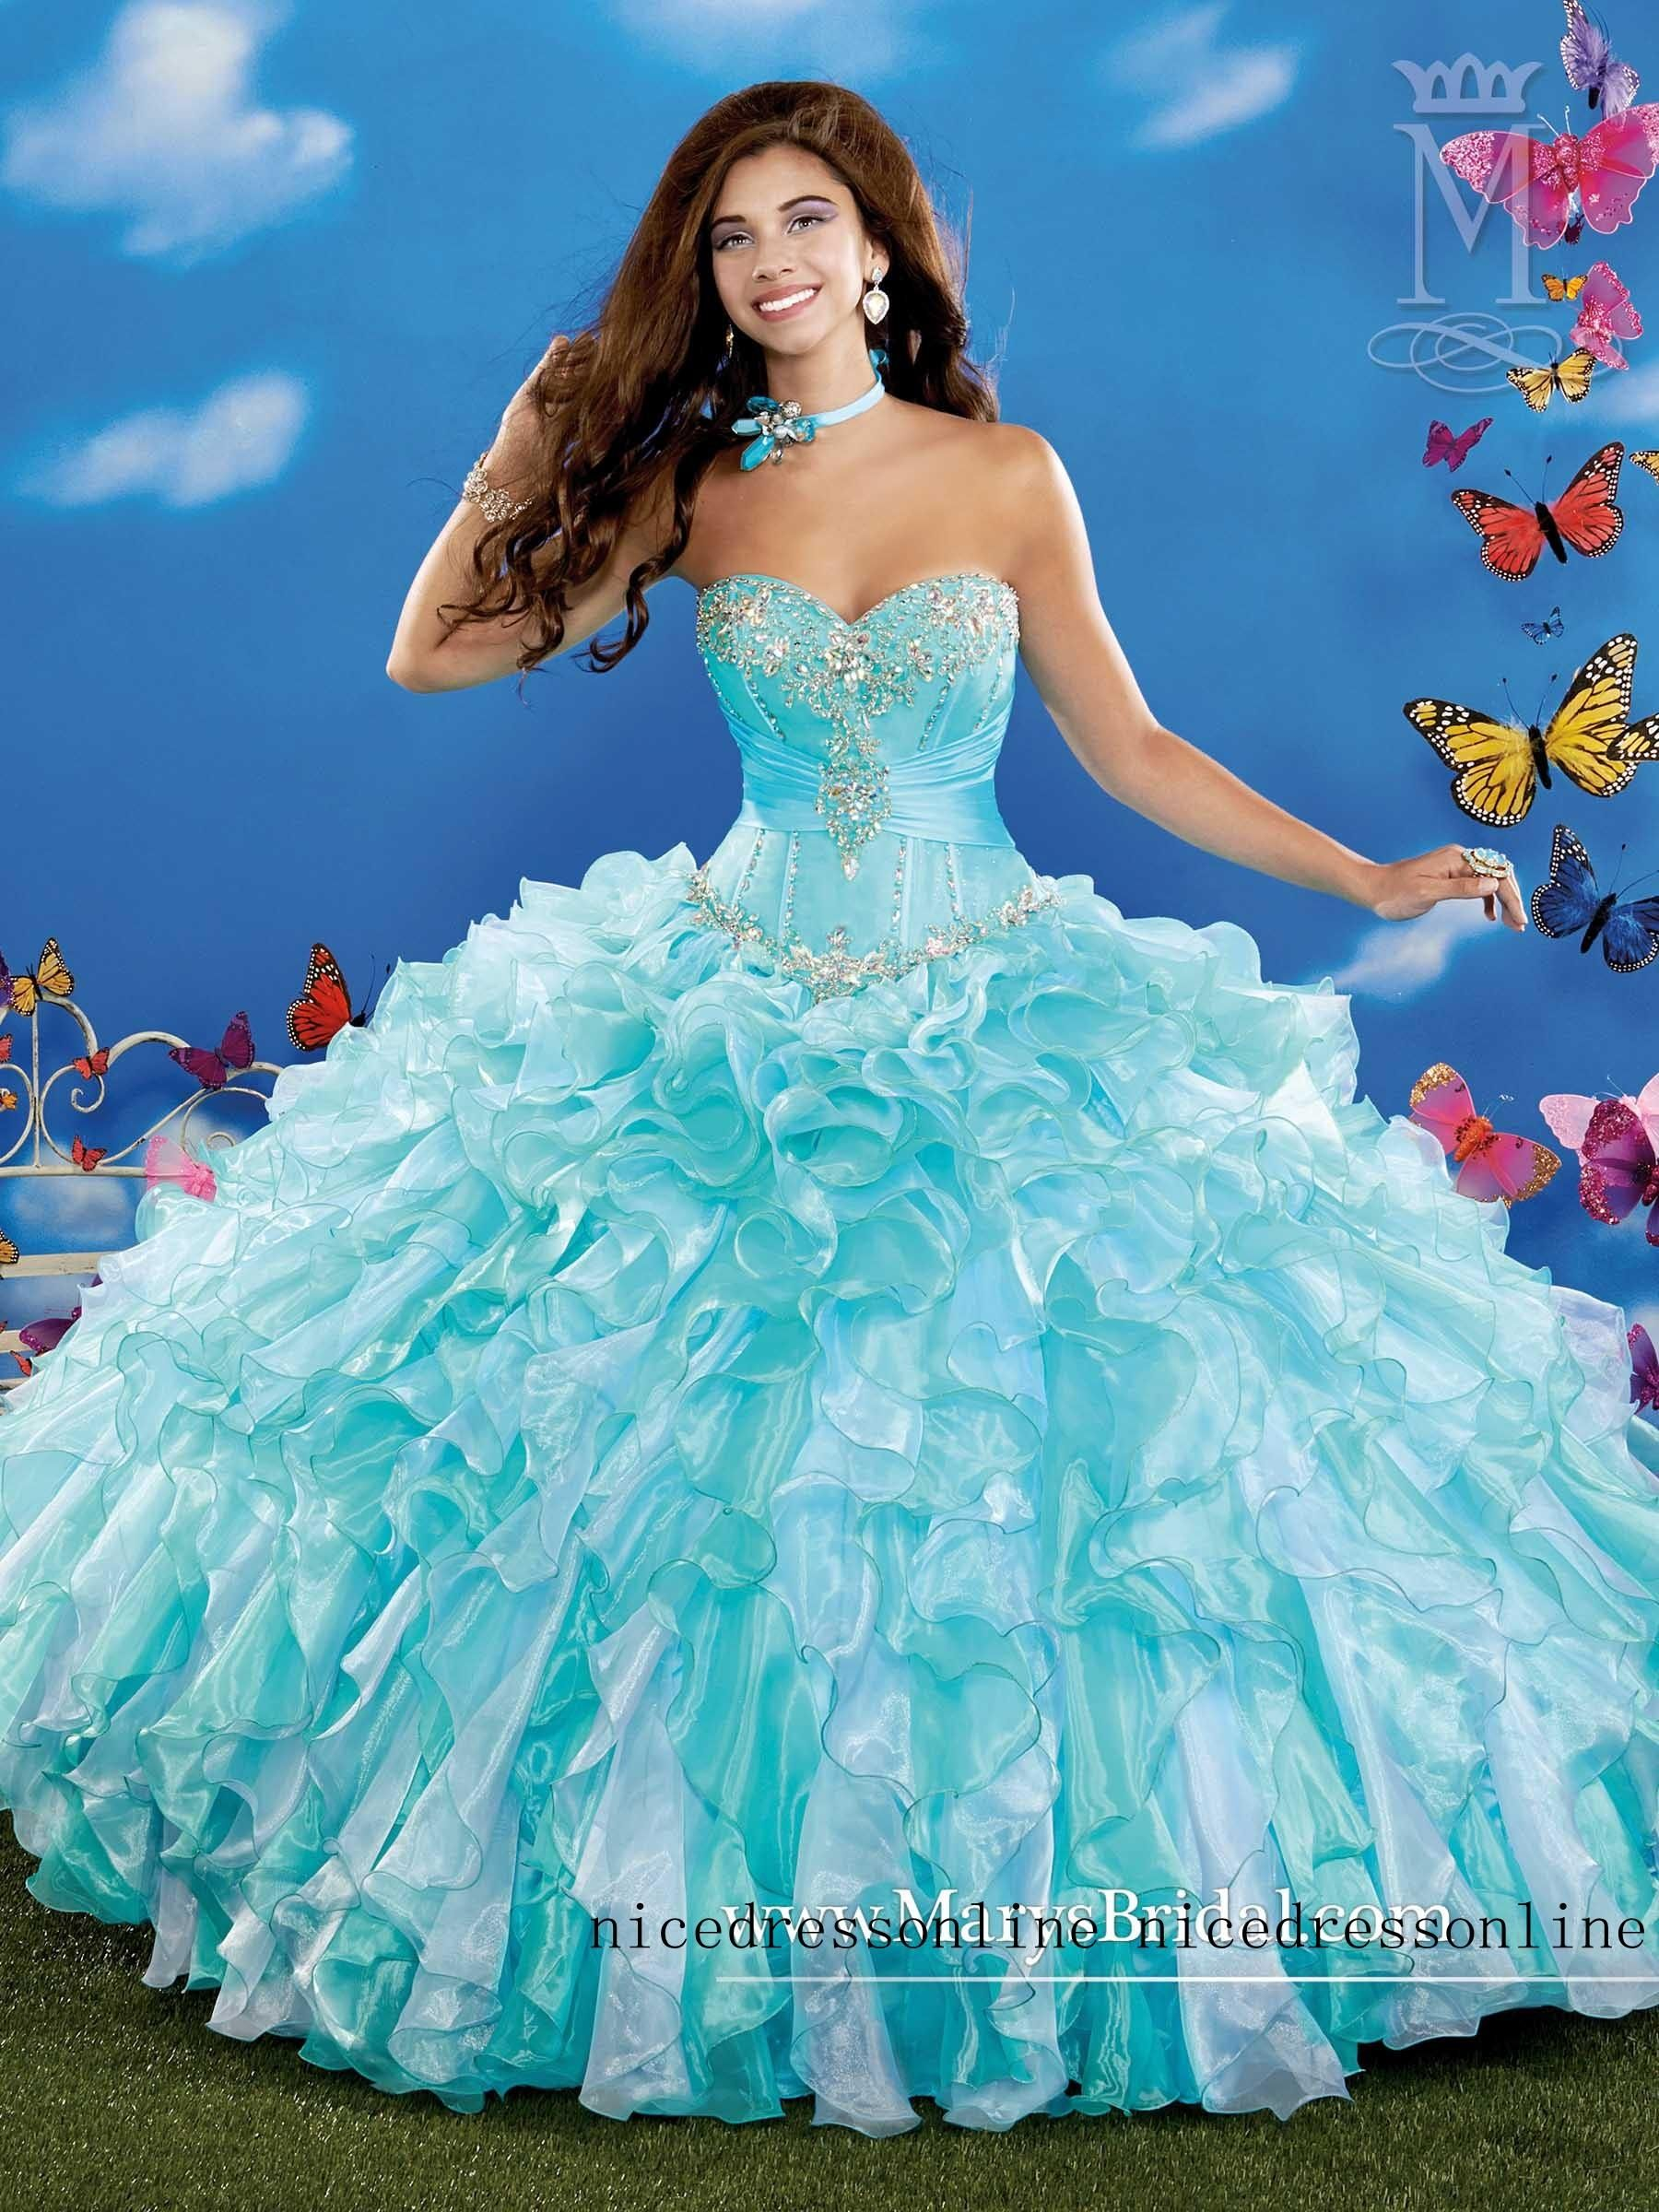 03864f8fcc9 2015 Aqua Pink Quinceanera Dresses Ball Gown Crystals Ruffled Organza Prom  Gowns with Jacket And Sweetheart Sleeveless Custom Made from  Nicedressonline ...